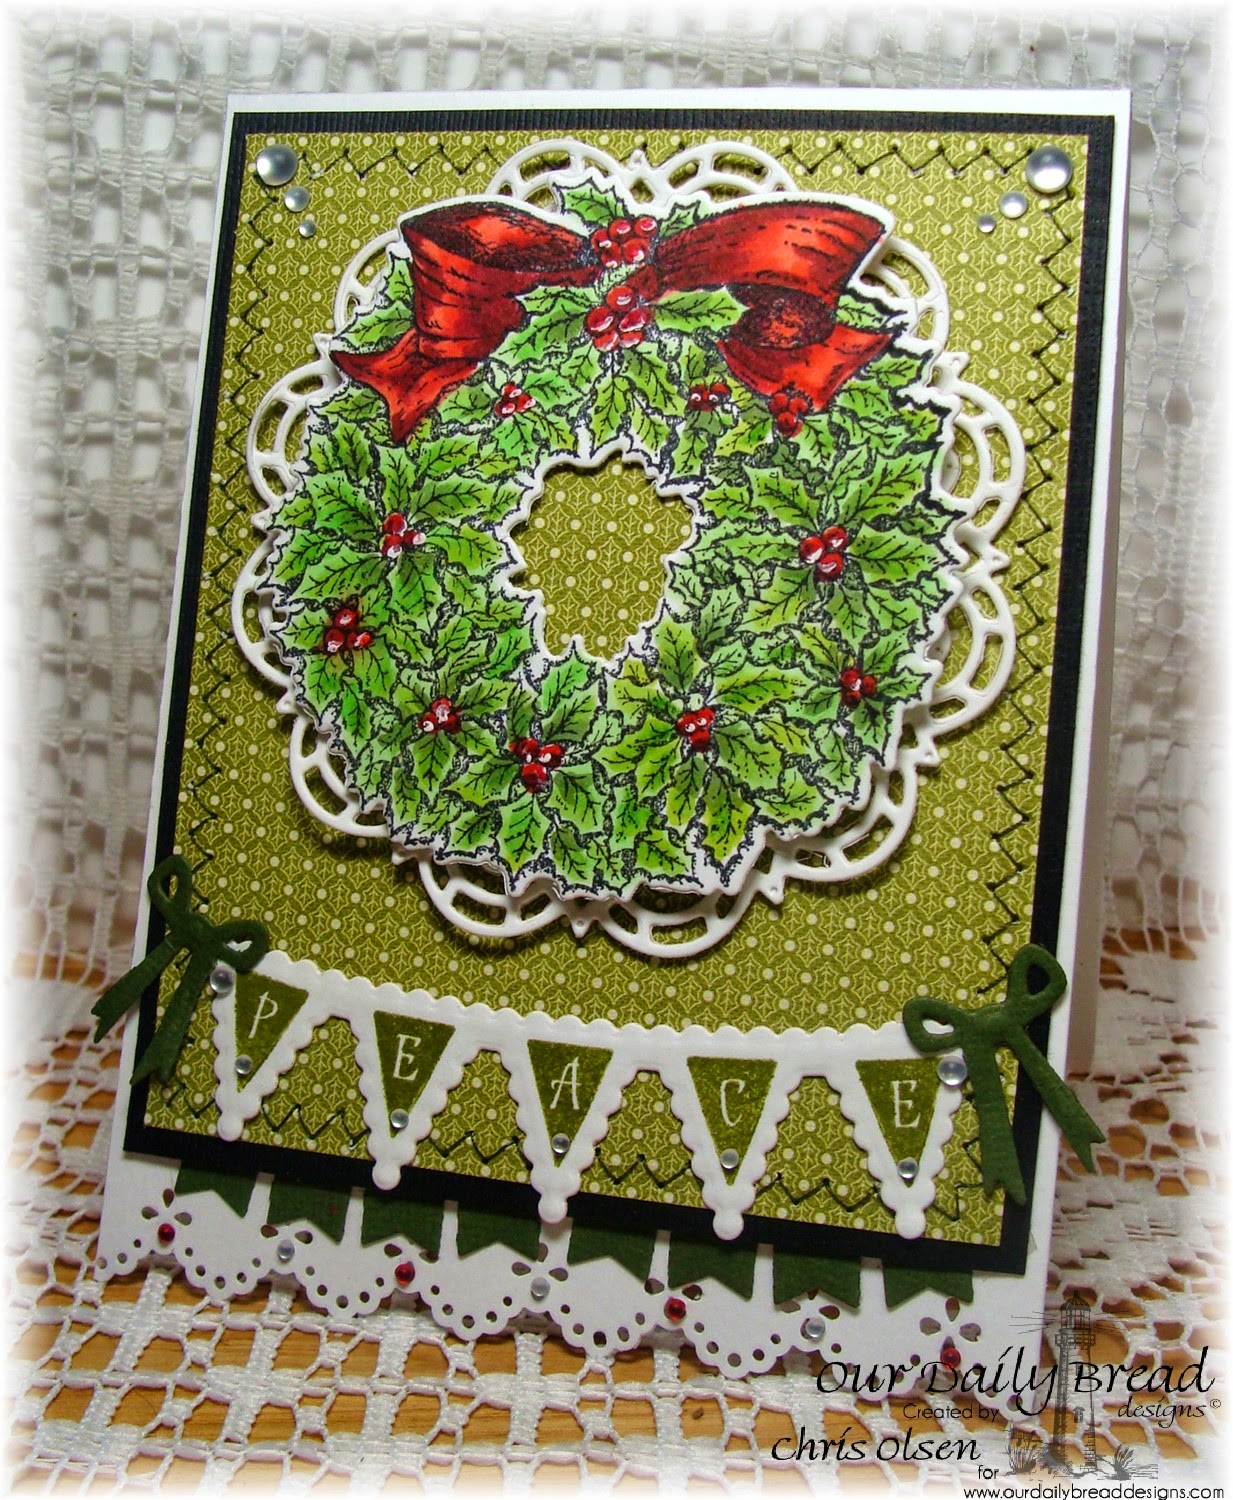 Our Daily Bread Designs, Holly Wreath, Christmas Pennant Row, Holly Wreath Die, Pennant Swag die, Pennant Row die, designer-Chris Olsen